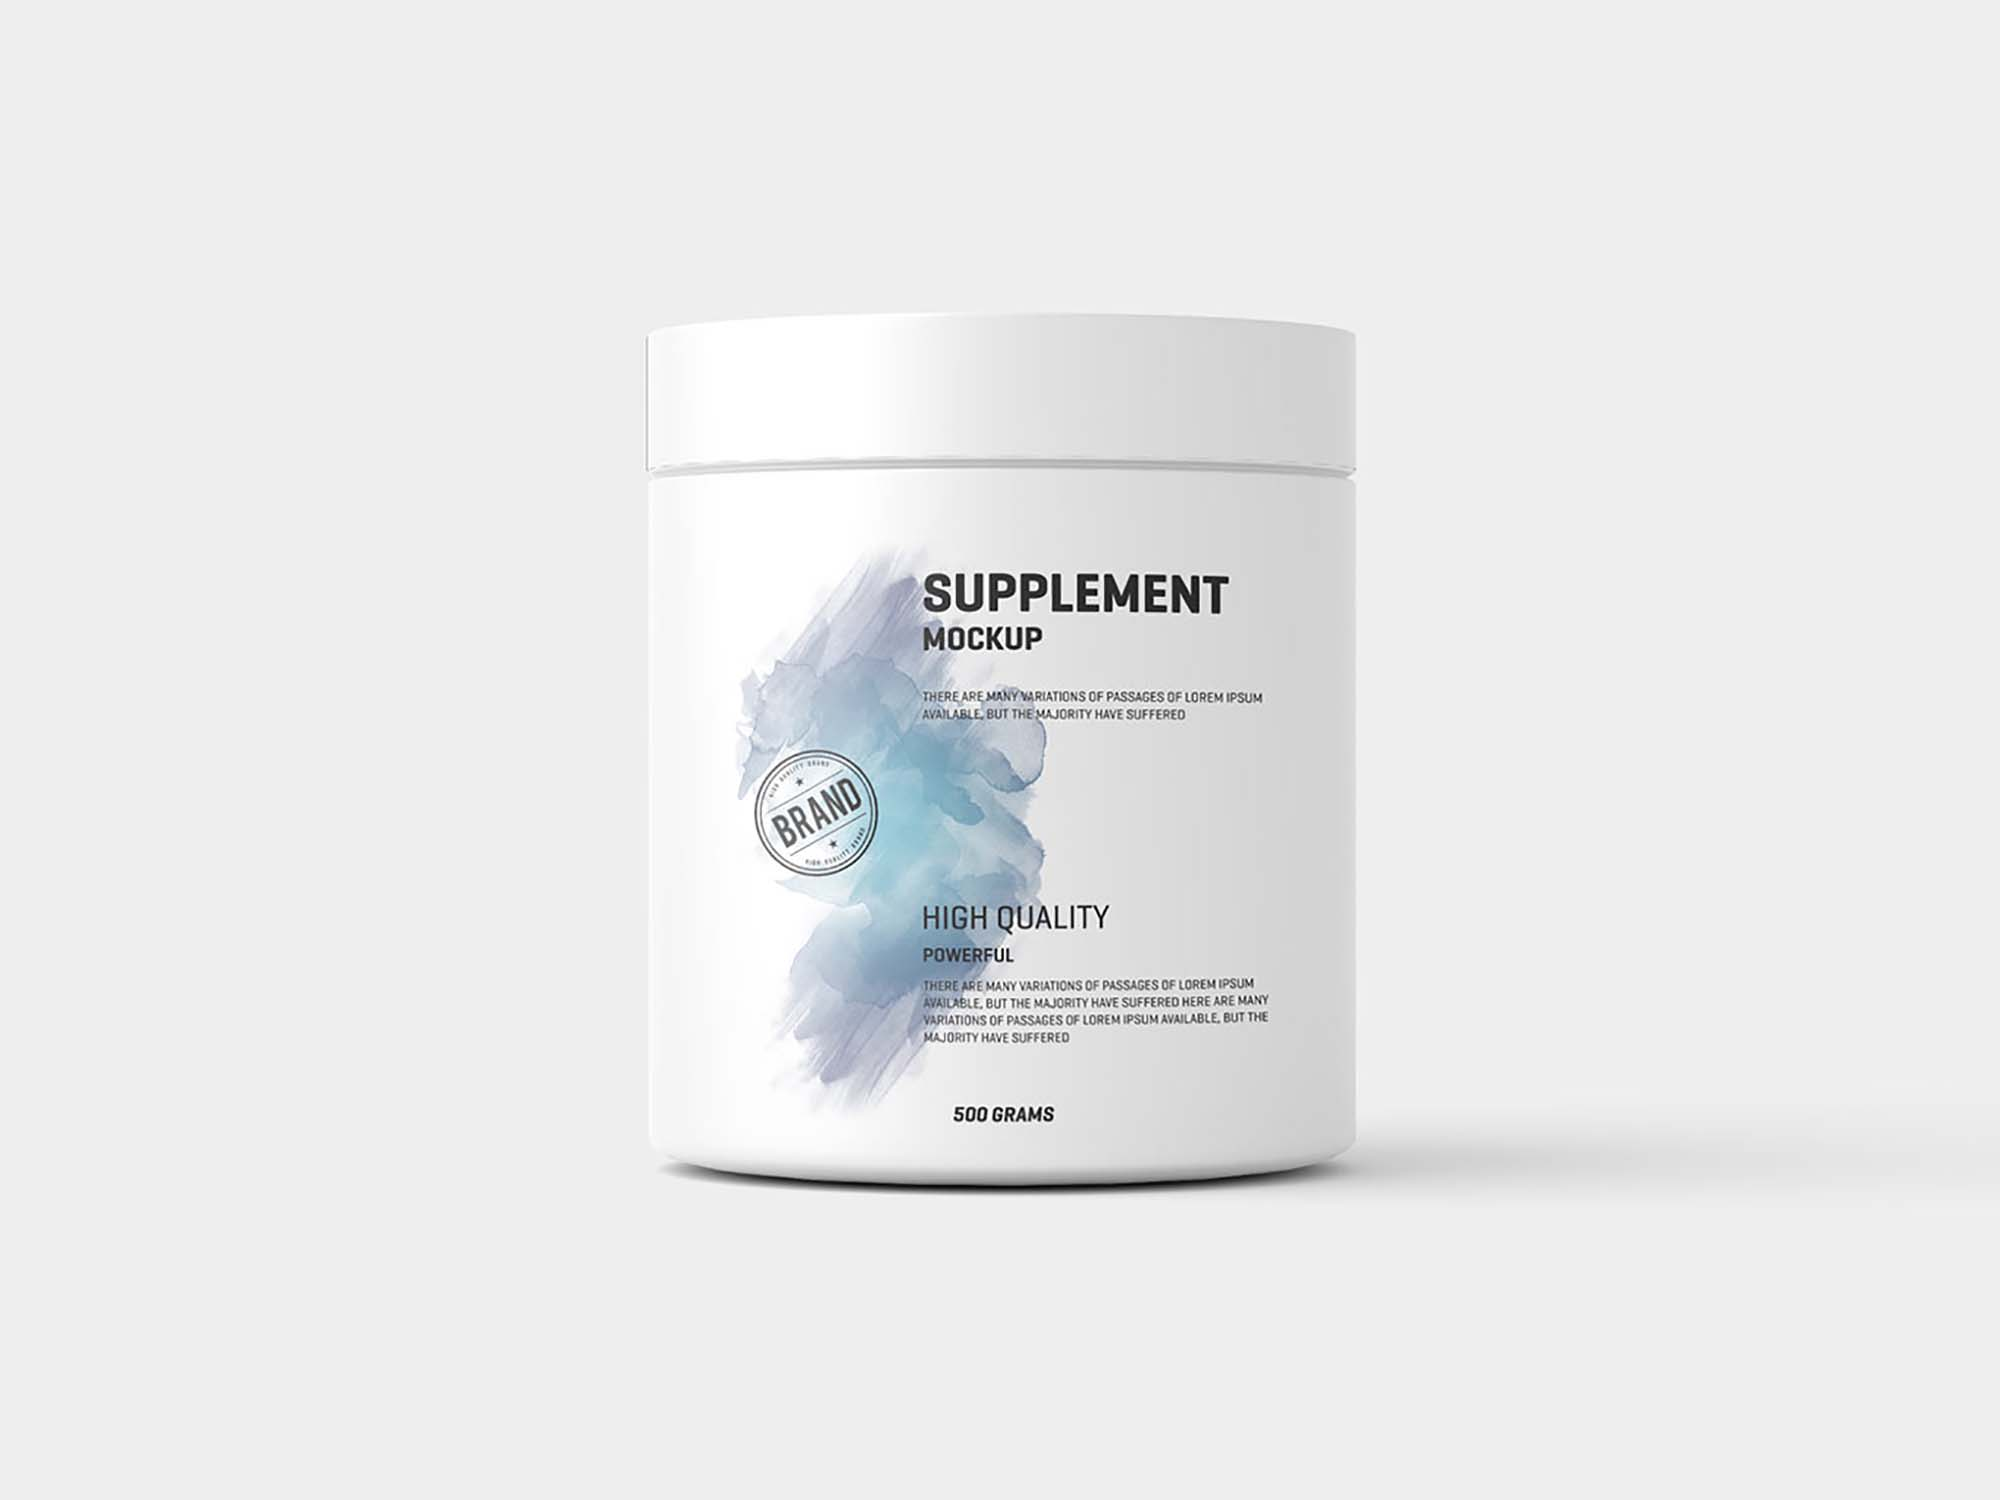 Jar Supplement Mockup 2